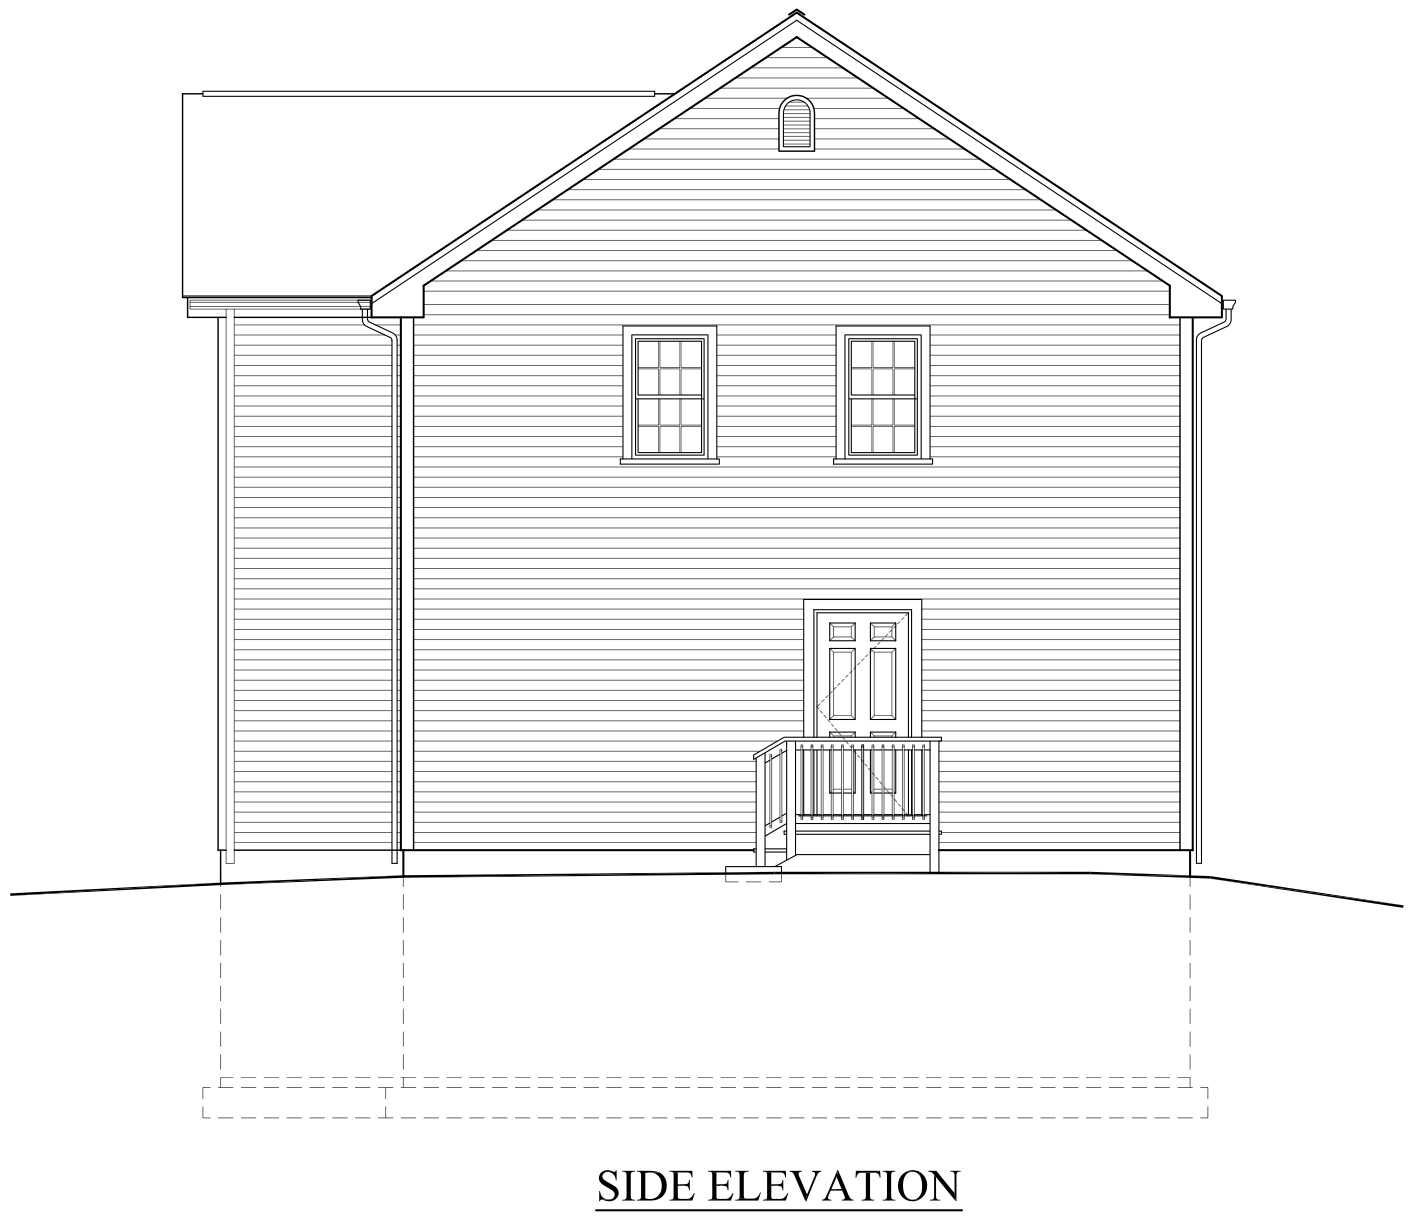 Civil Drawing Front Elevation : Front view elevation of house plans